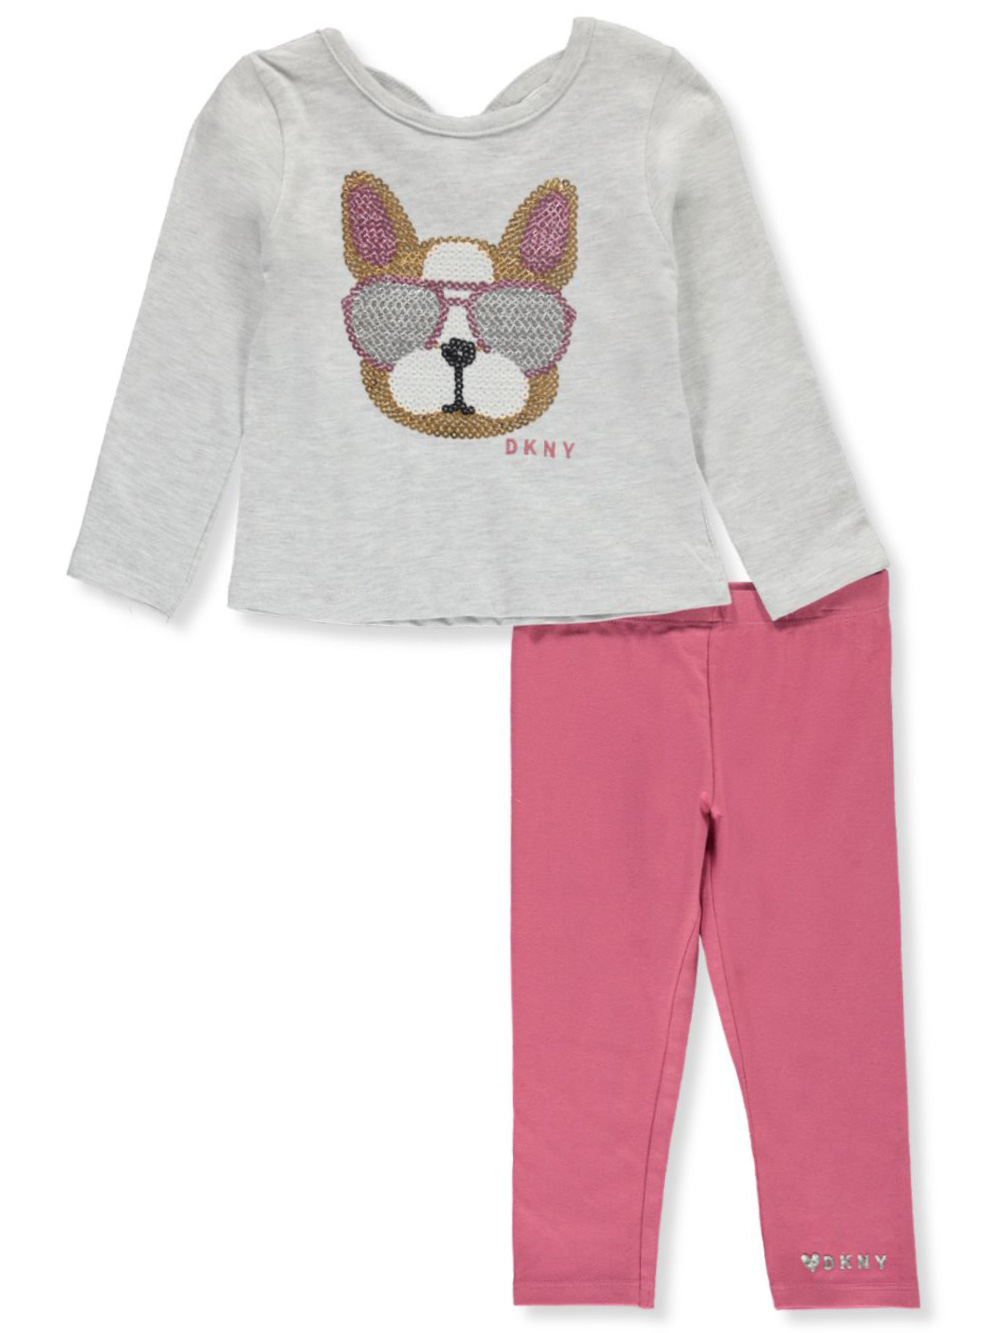 Girls Medium Gray Pant Sets